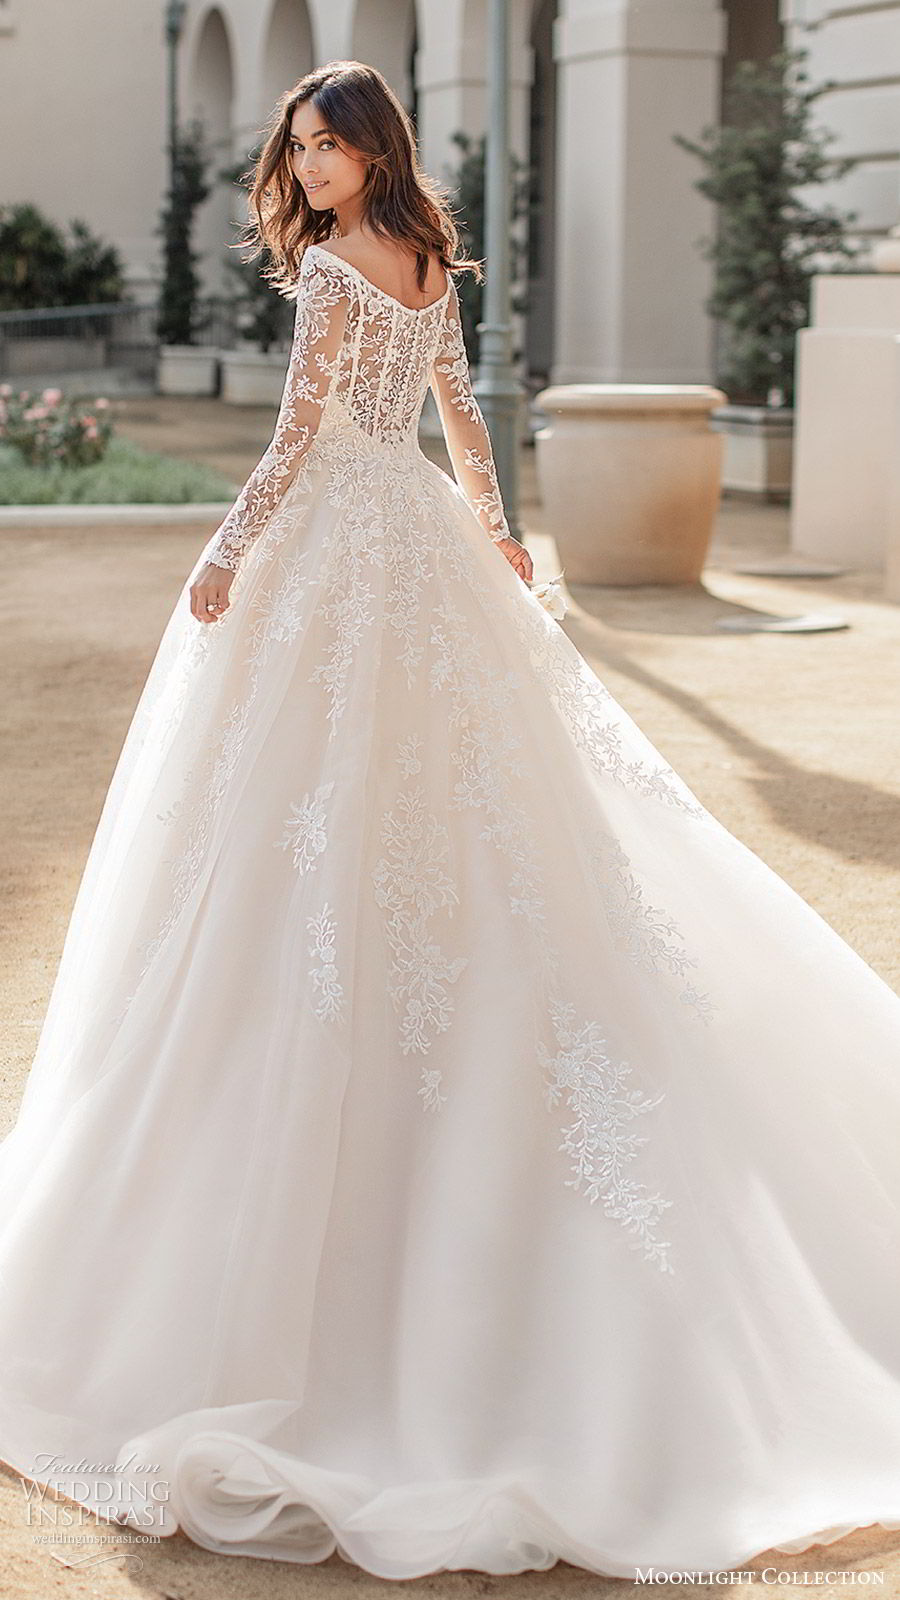 moonlight collection fall 2019 bridal illusion long sleeves off shoulder neckline fully embellished lace a line ball gown wedding dress (7) elegant princess romantic chapel train bv